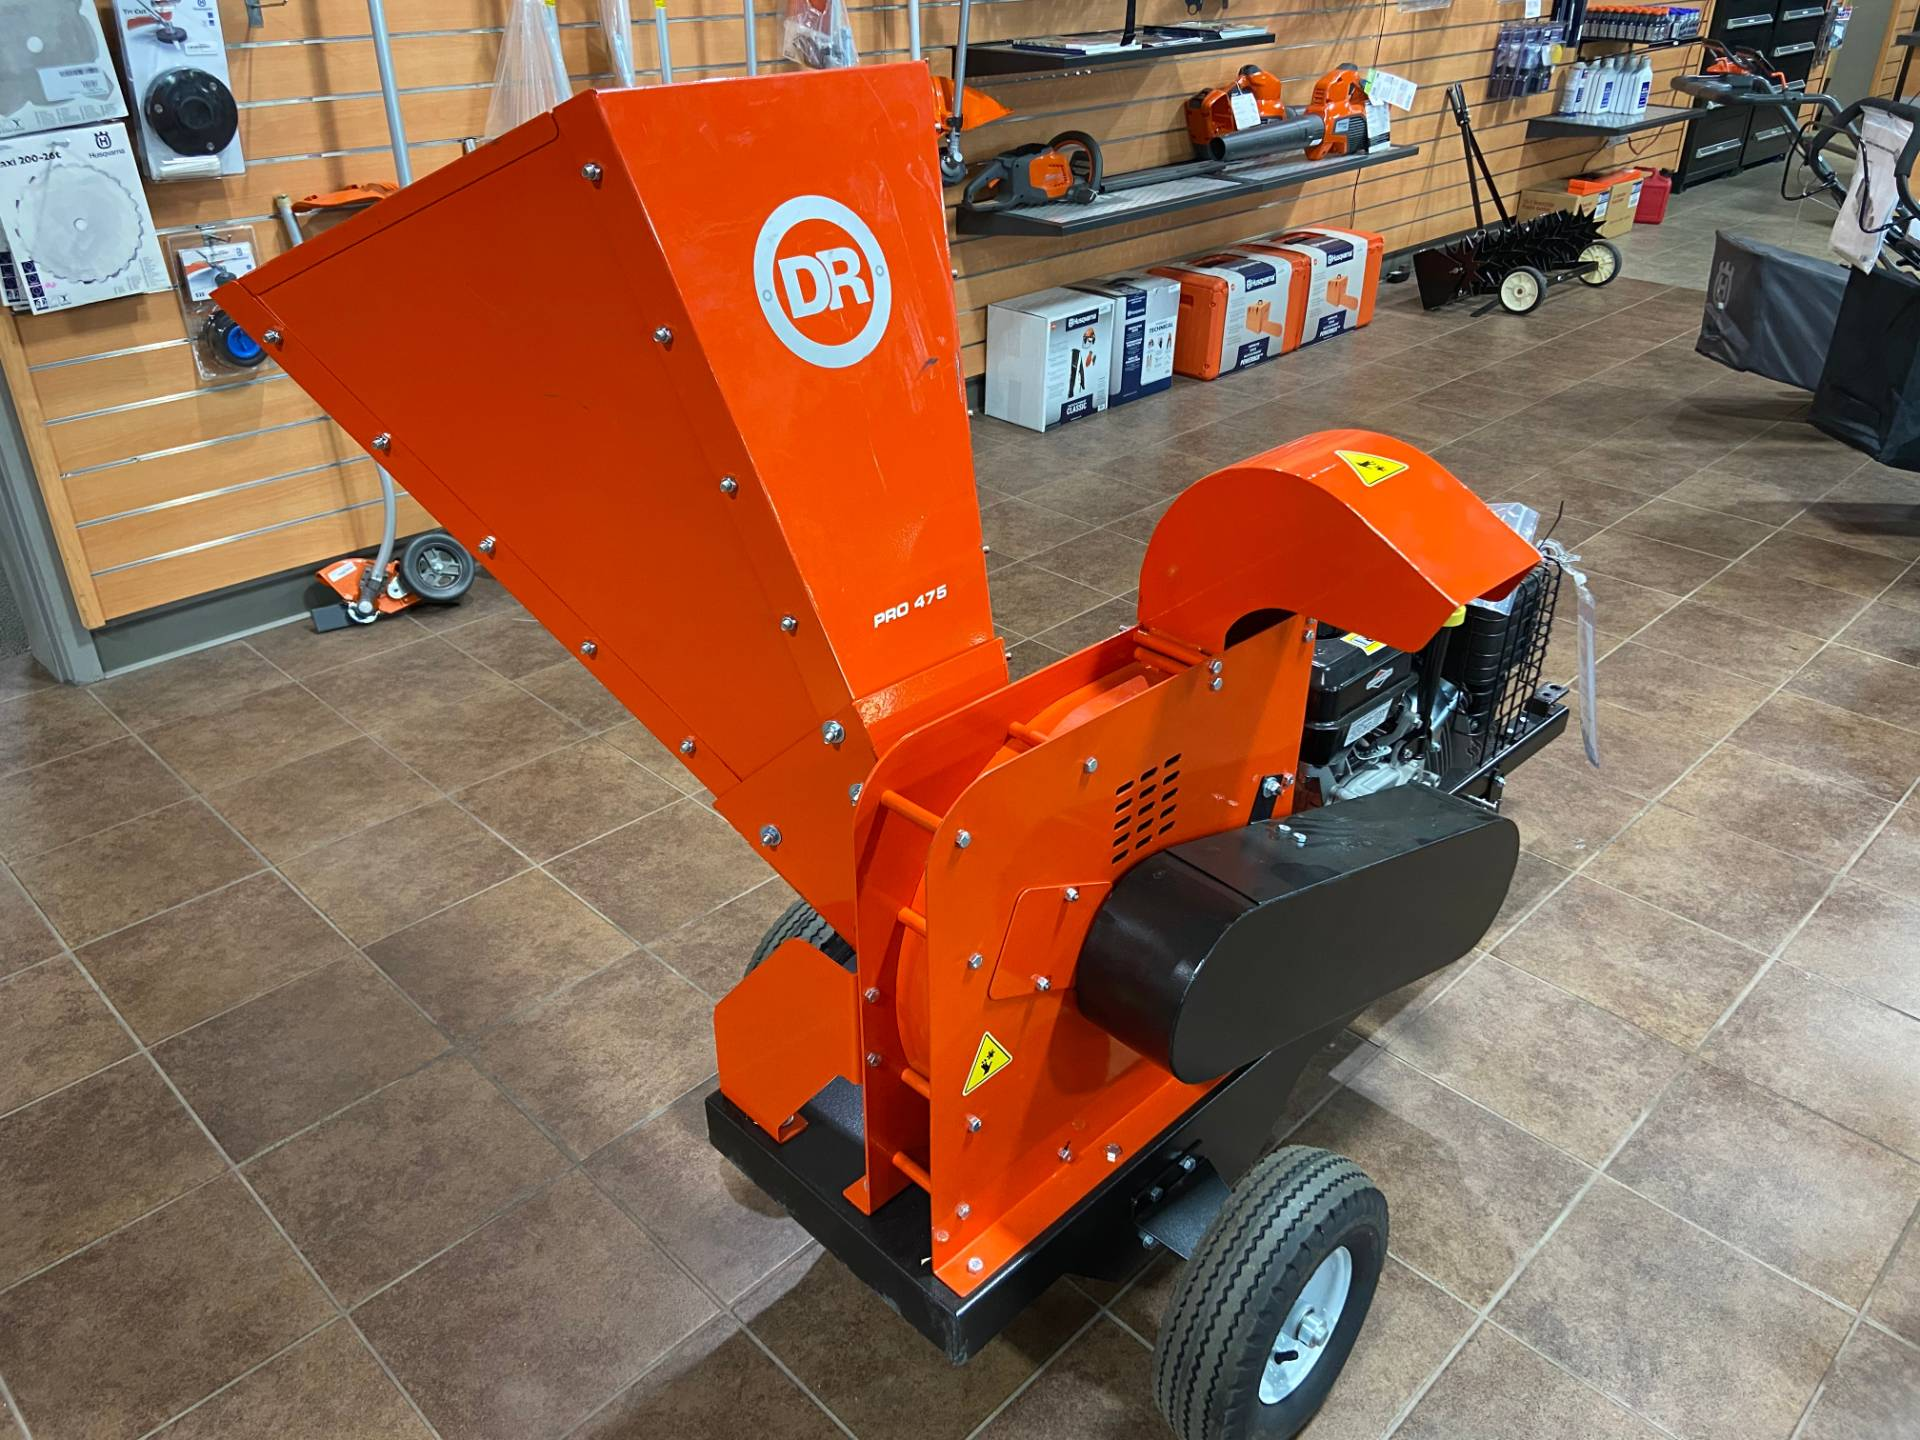 DR Power Equipment 11.5 HP Pro 475 Wood Chipper in Barre, Massachusetts - Photo 3